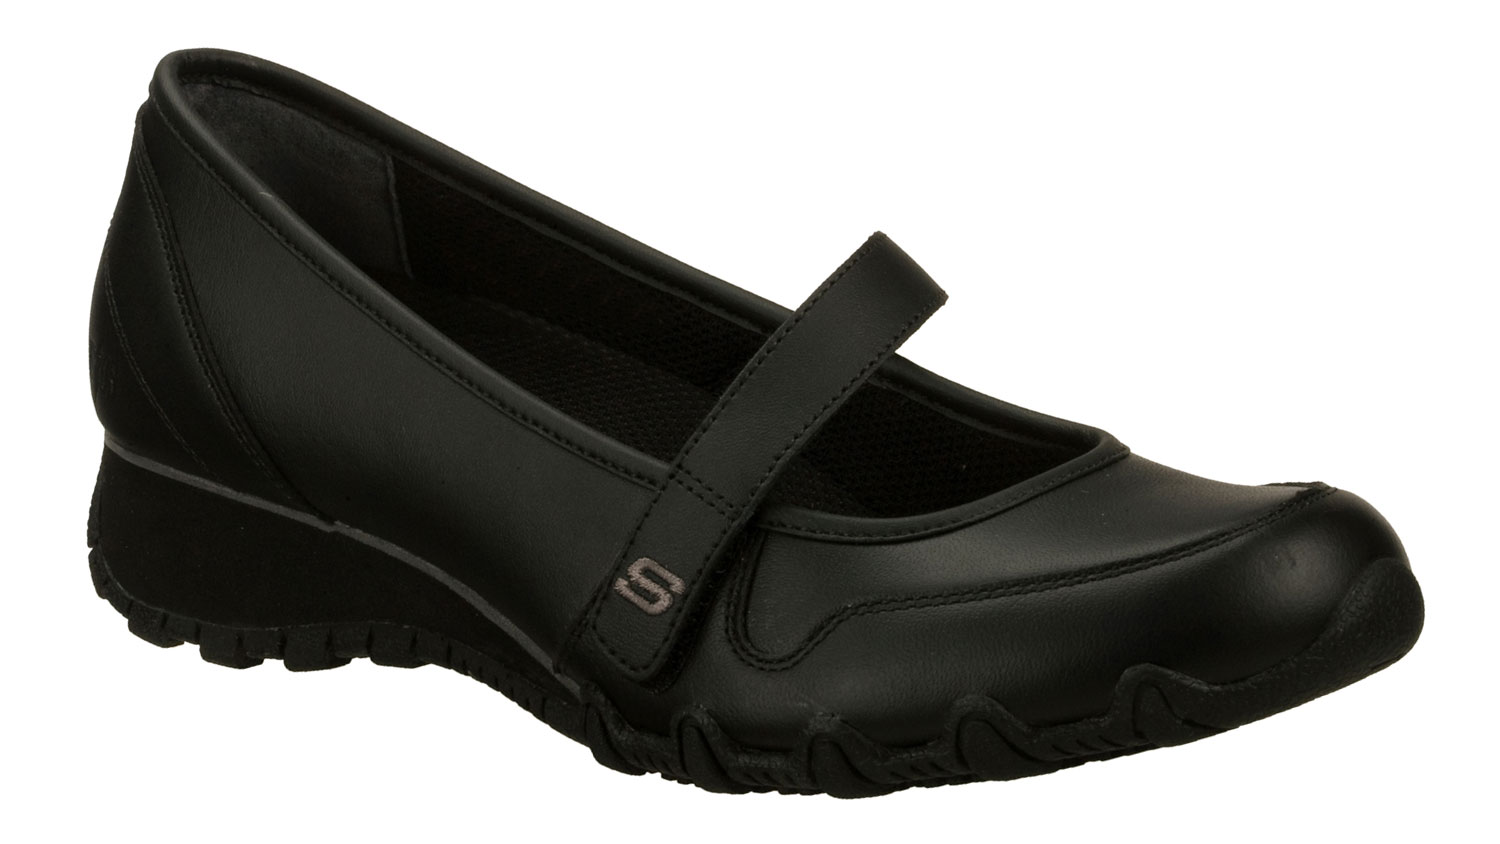 Best Working Shoes for Women